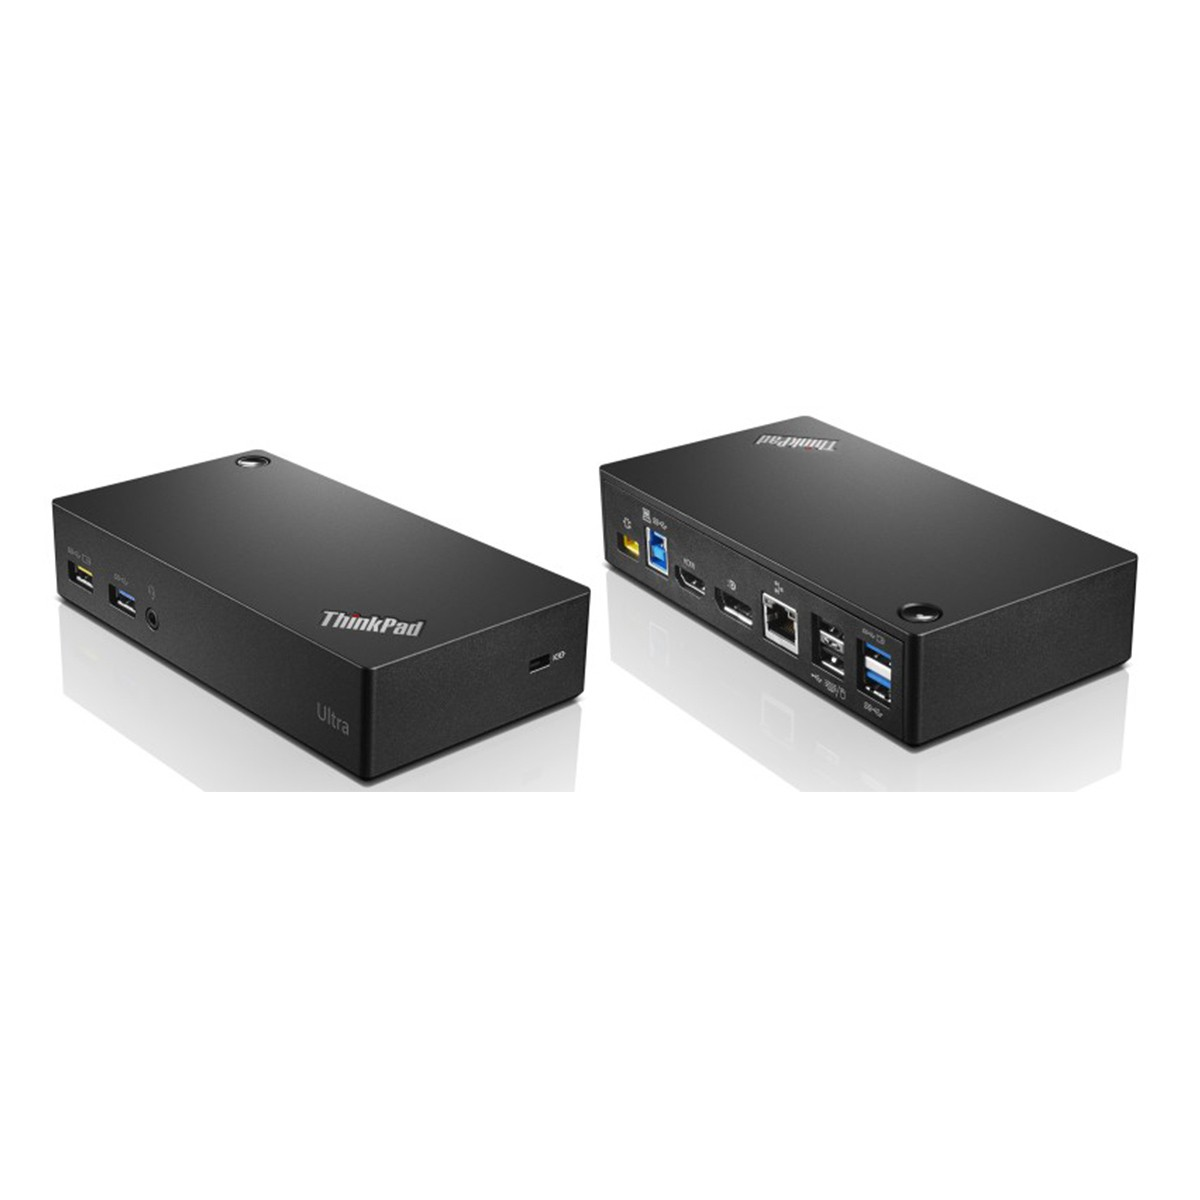 (EOL) LENOVO® ThinkPad® USB 3.0 Ultra Dock